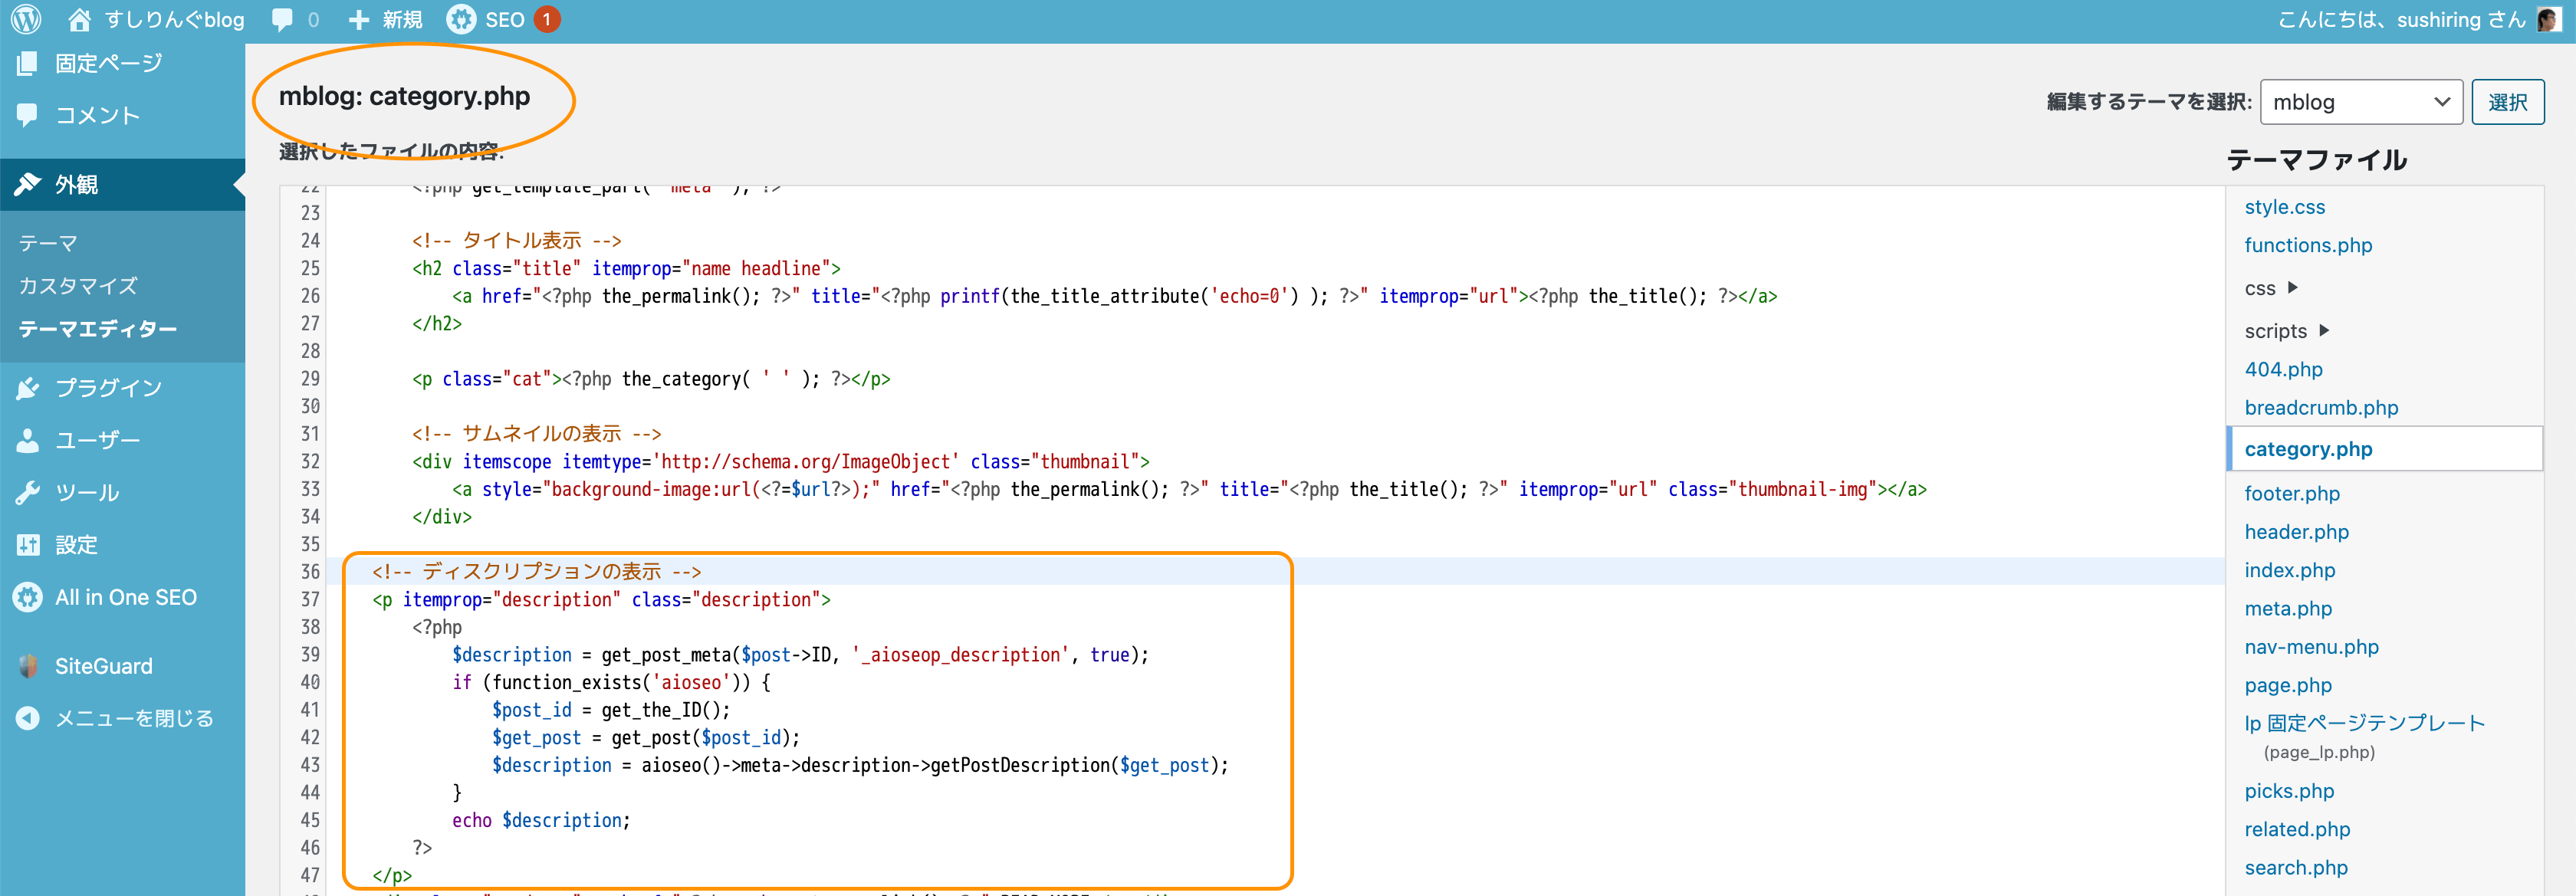 category.php